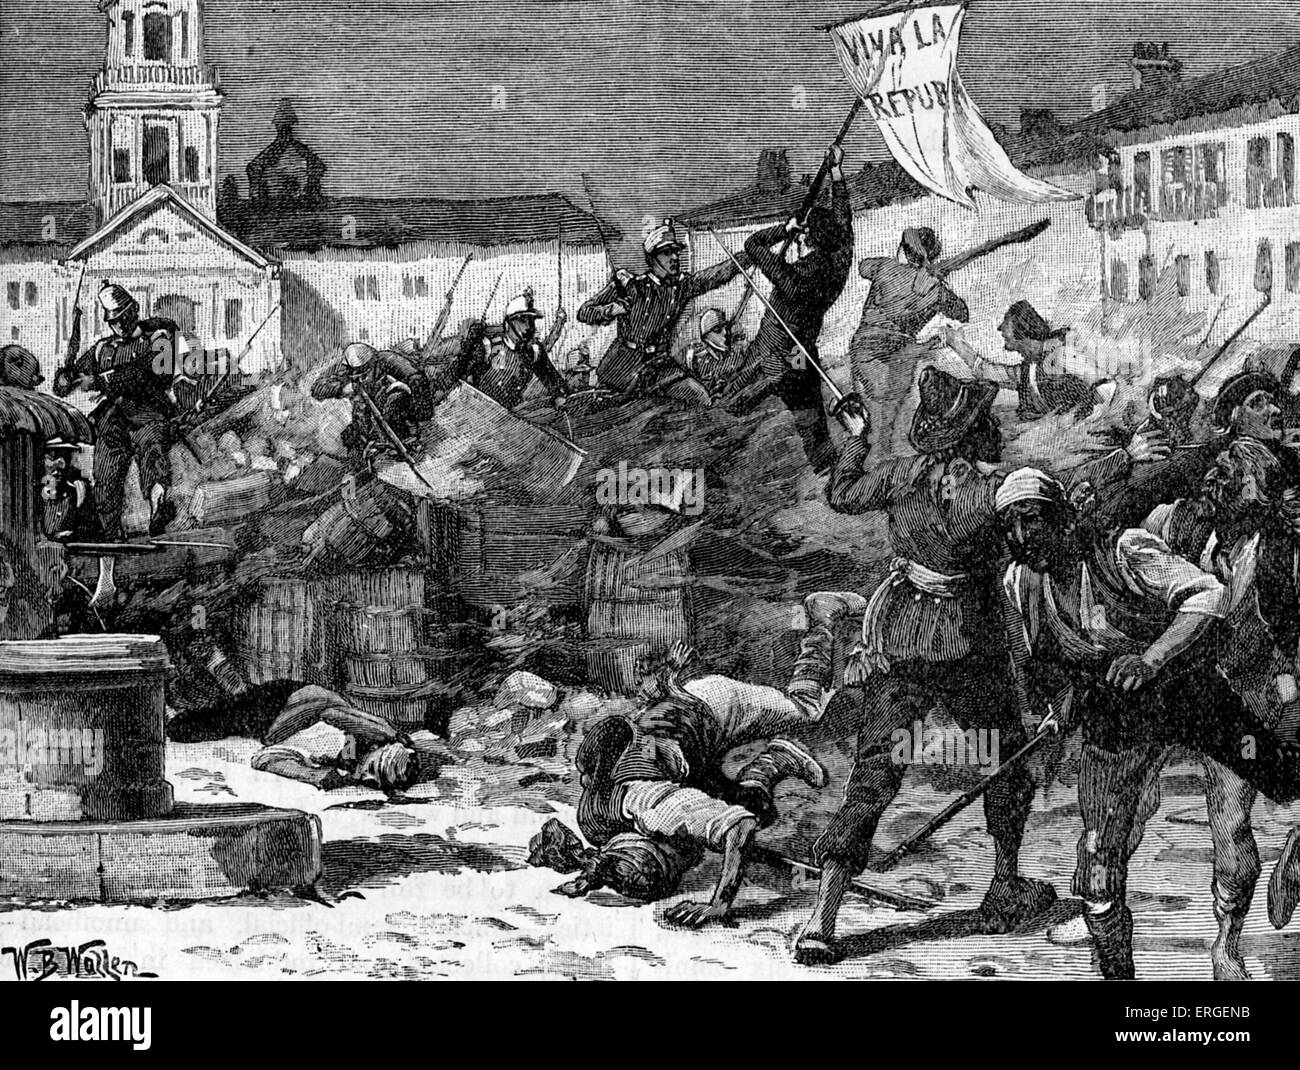 Street fighting in Malaga, Spain during Glorious Revolution (La Gloriosa), 1868. Led to deposition of Queen Isabella - Stock Image